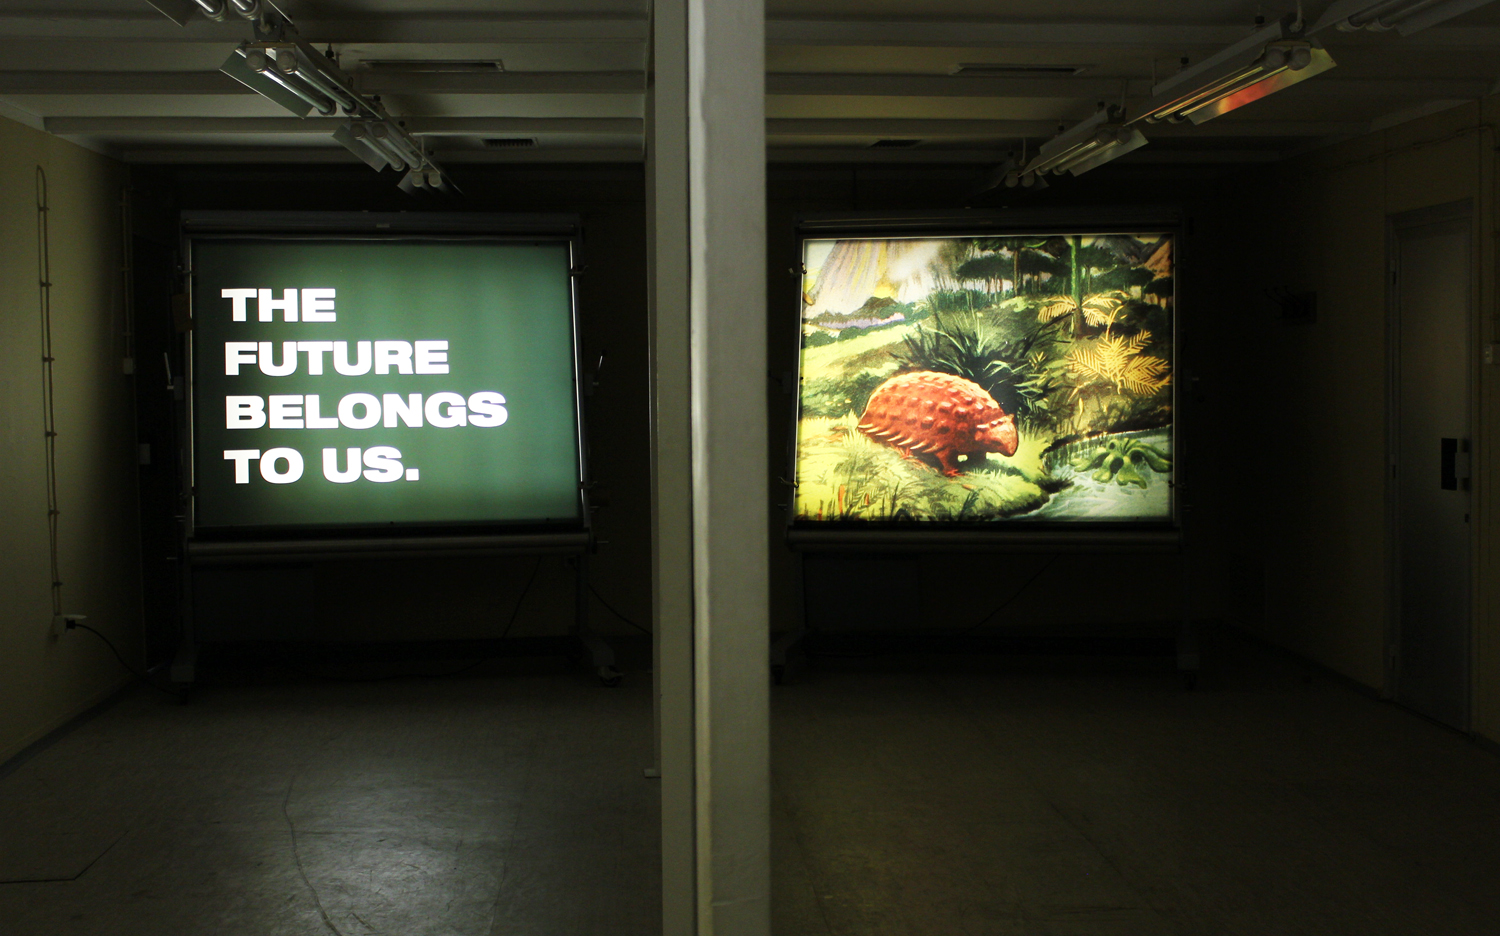 Our Prehistoric Fate, 2011, two duraclear prints on vintage Yugoslavian military lightbox displays and clamps. Prints are each 151 x 177 cm. Installation view 1st Time Machine Biennale of Contemporary Art. D-O ARK Underground, Konjic, Bosnia and Herzegovina. (photo: Vladimir Miladinovic).